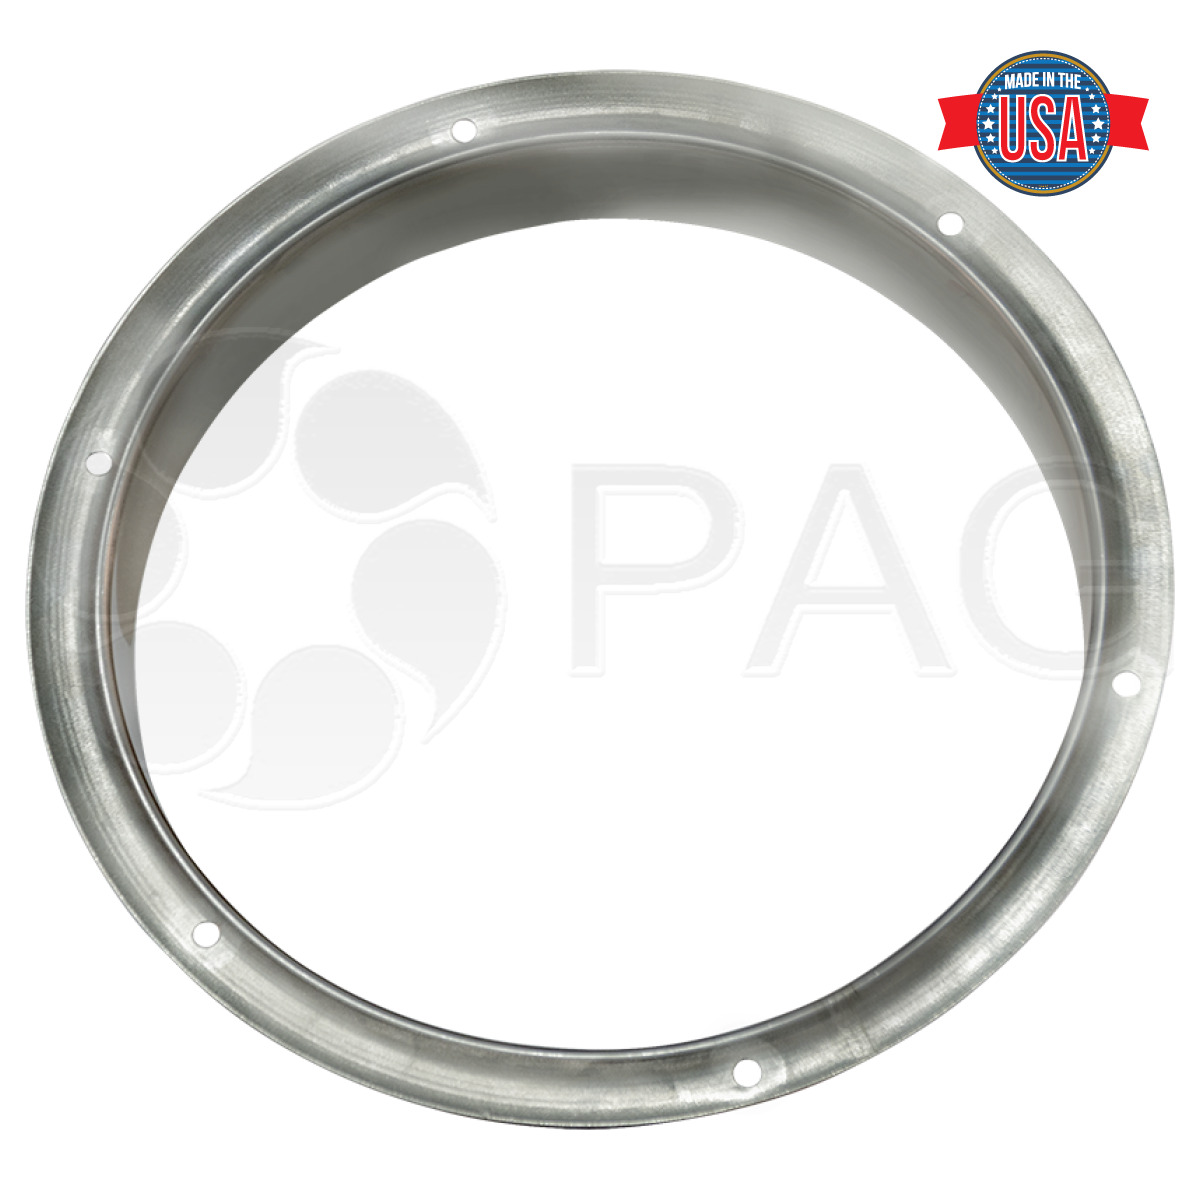 Reverse stainless flange picture for KwiKool Machines